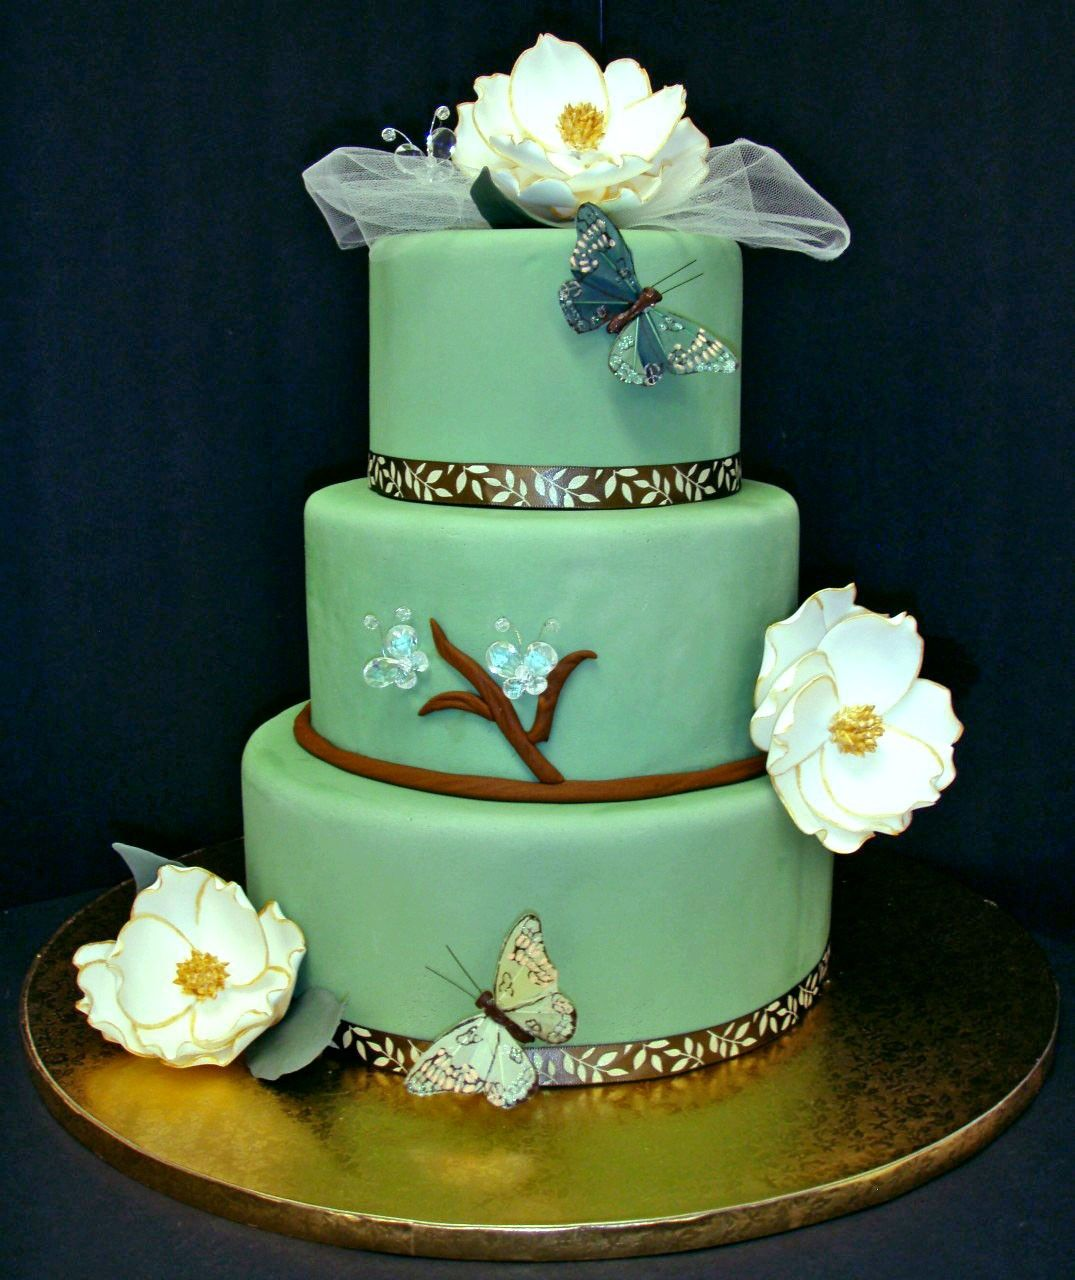 Costco Bakery Cakes Cake Ideas And Designs